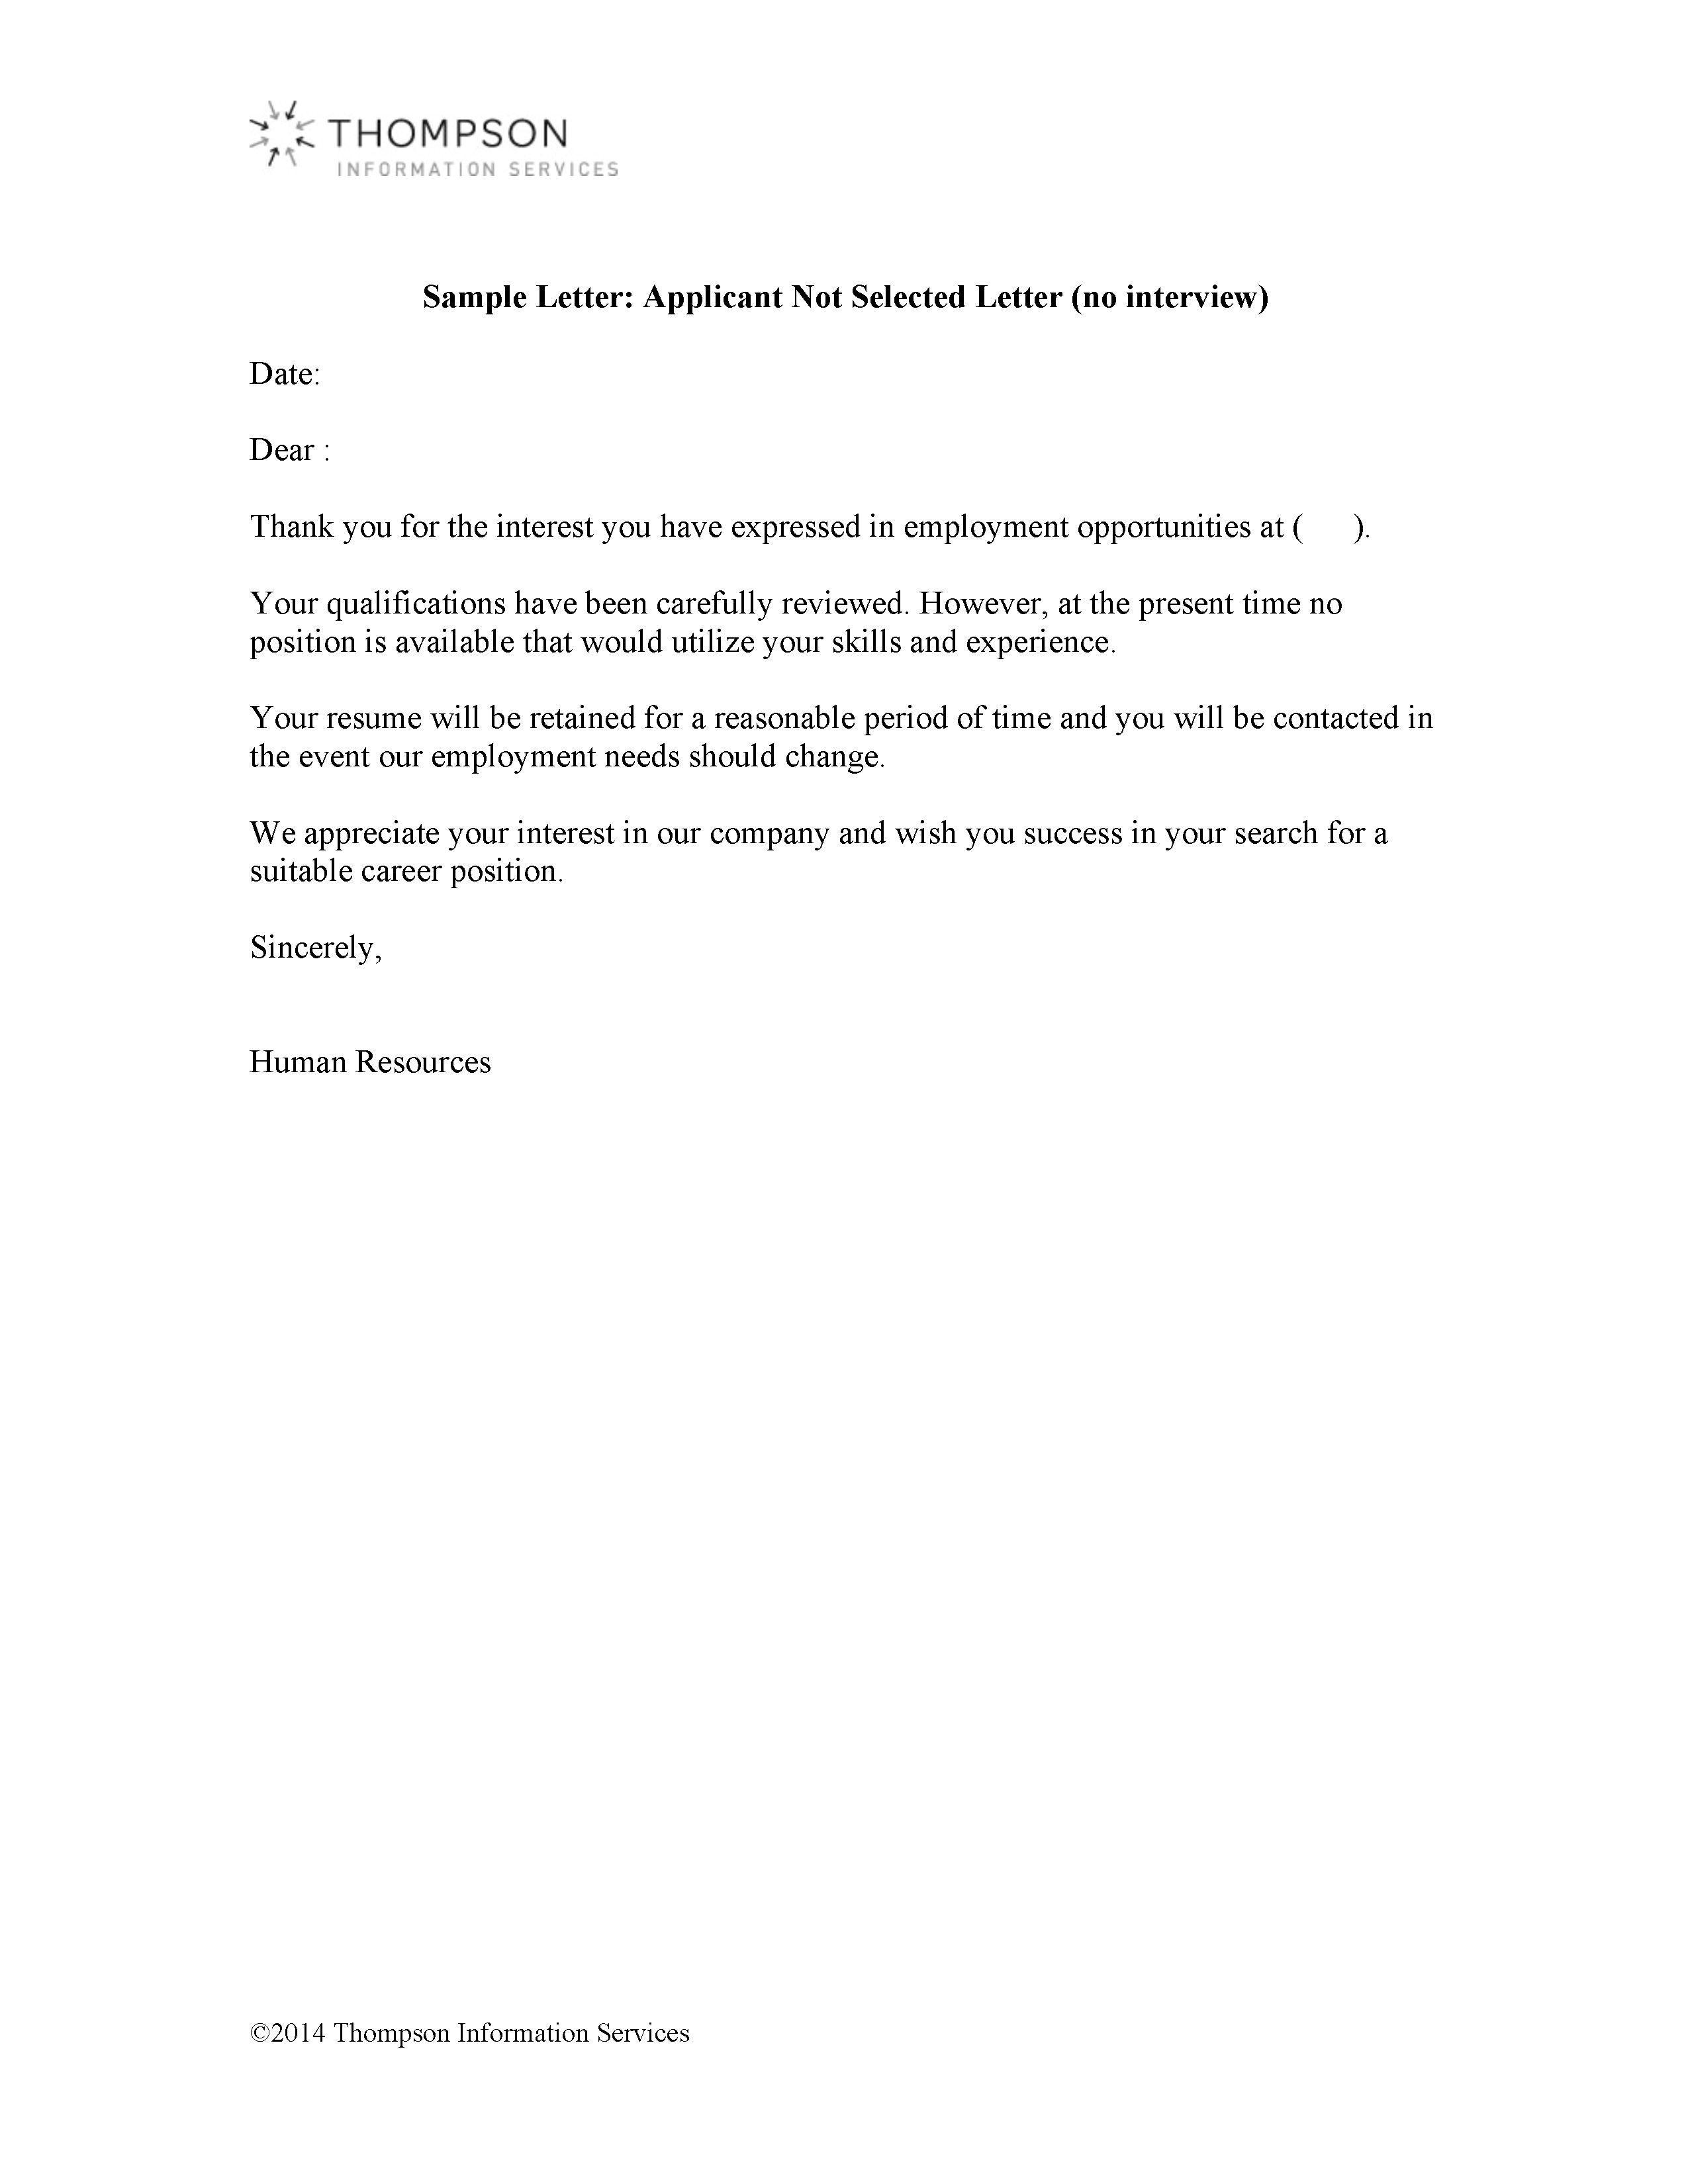 Letter To Applicants Not Selected from d3crmev290s45i.cloudfront.net